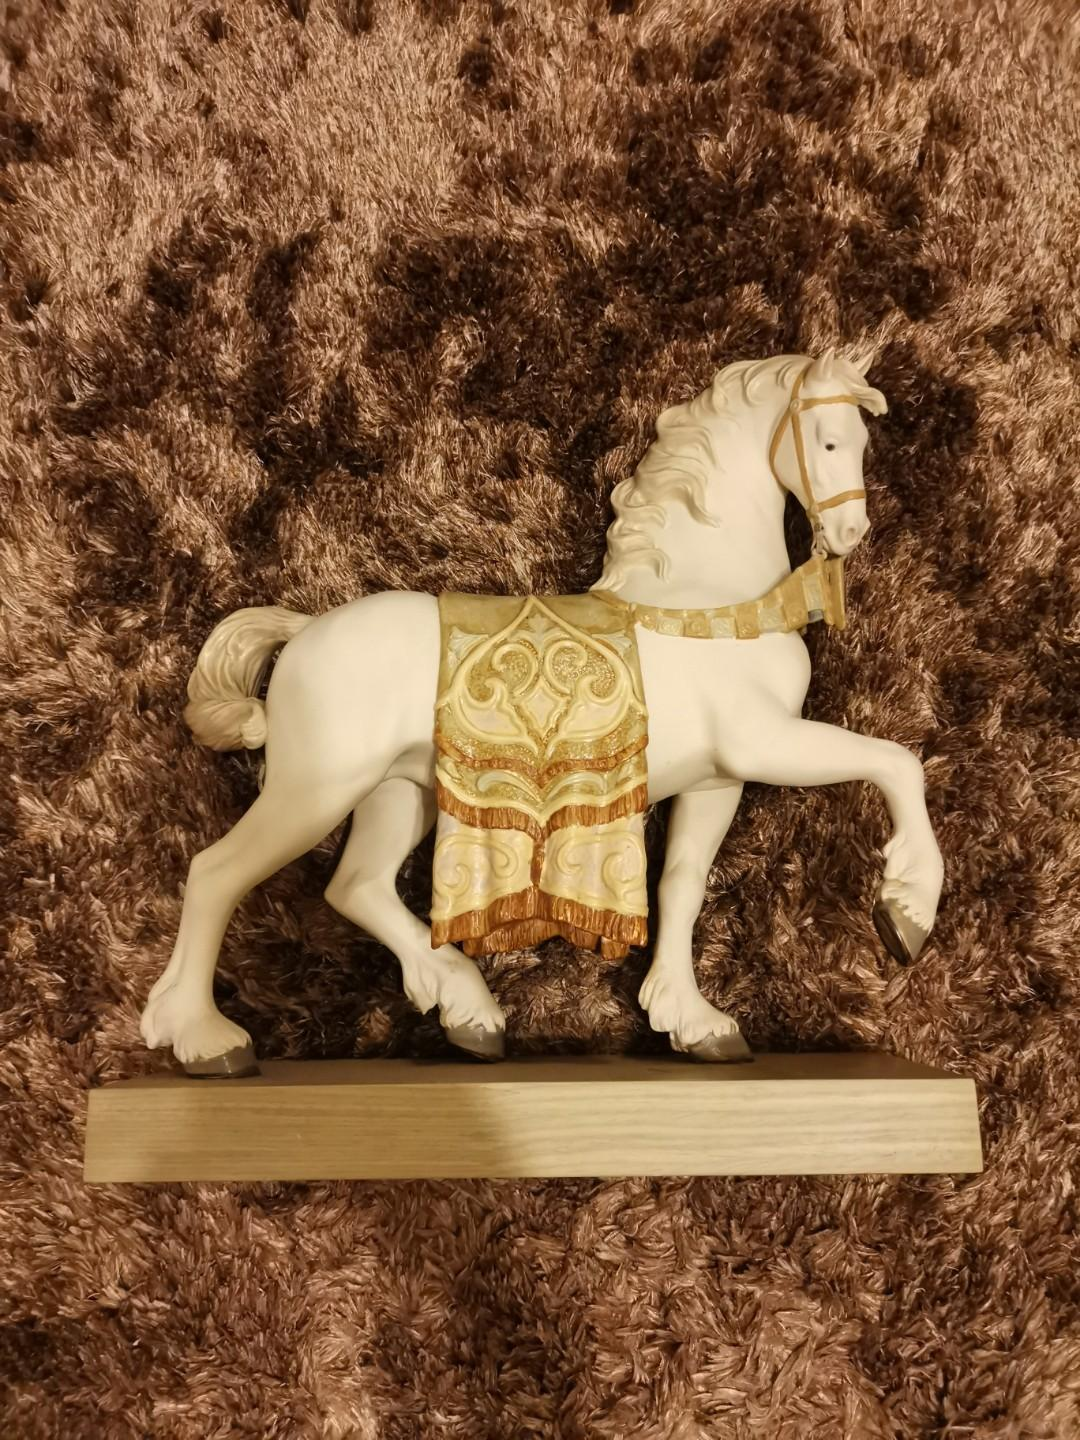 Calling for guitar sellers!! Keen to trade a Lladro Regal Steed. Lladro Paragon shop will verify this piece of Its authenticity for u